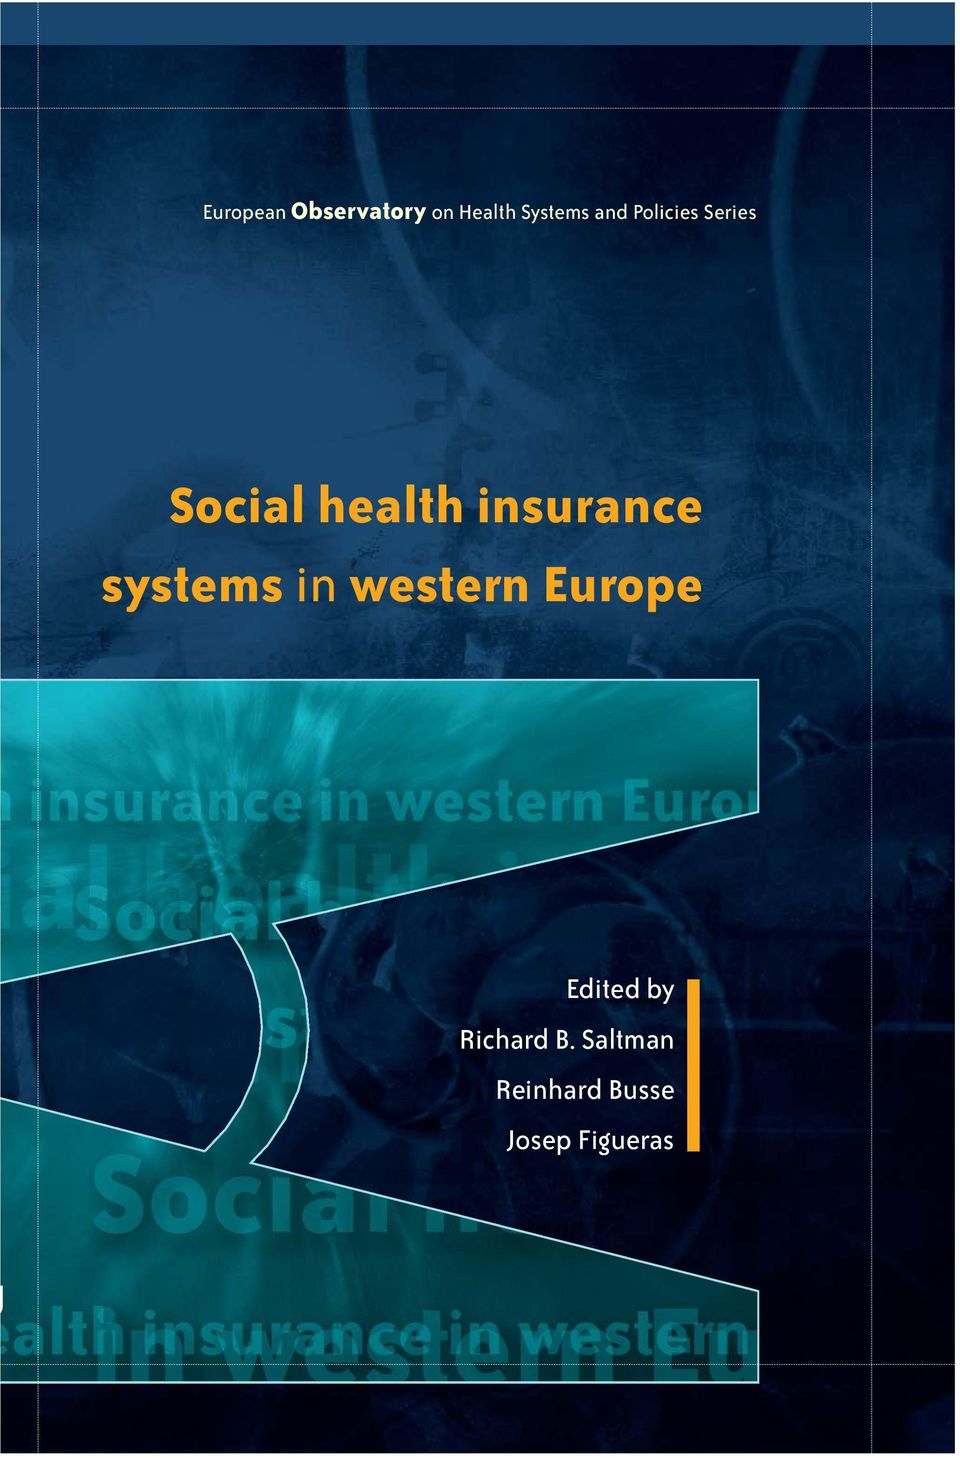 insurance systems in western Europe